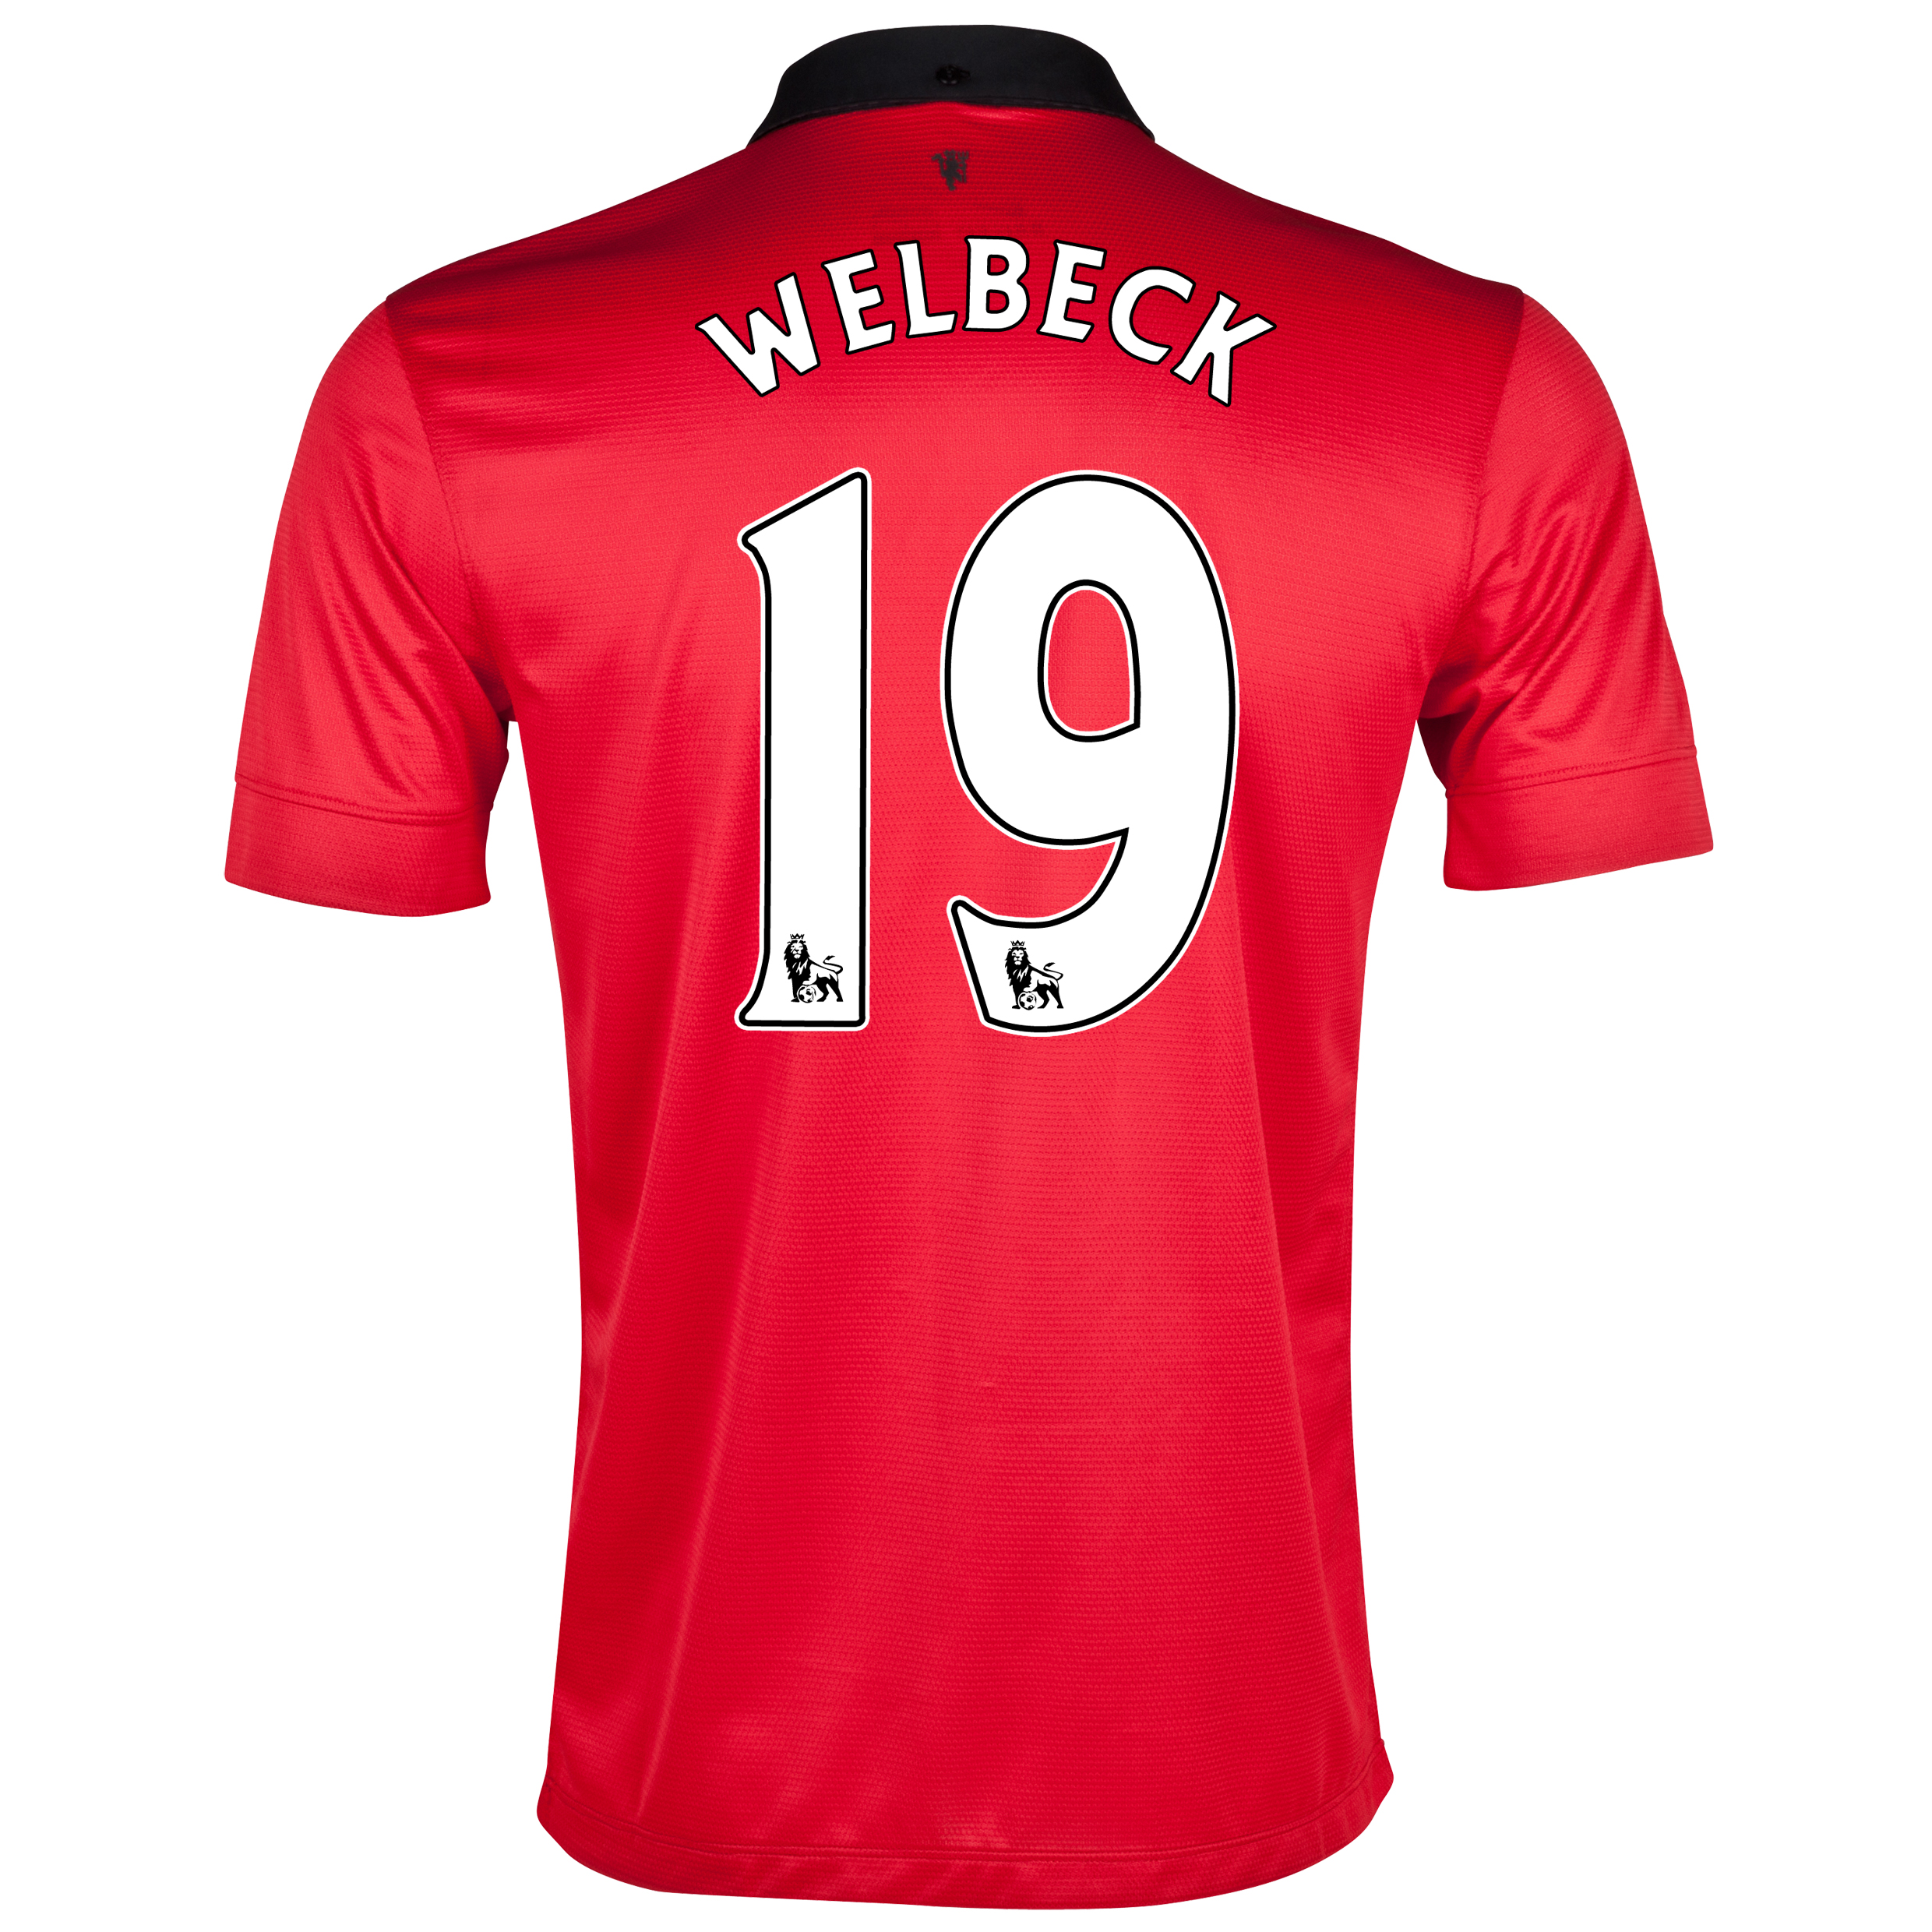 Manchester United Home Shirt 2013/14 - Kids with Welbeck 19 printing